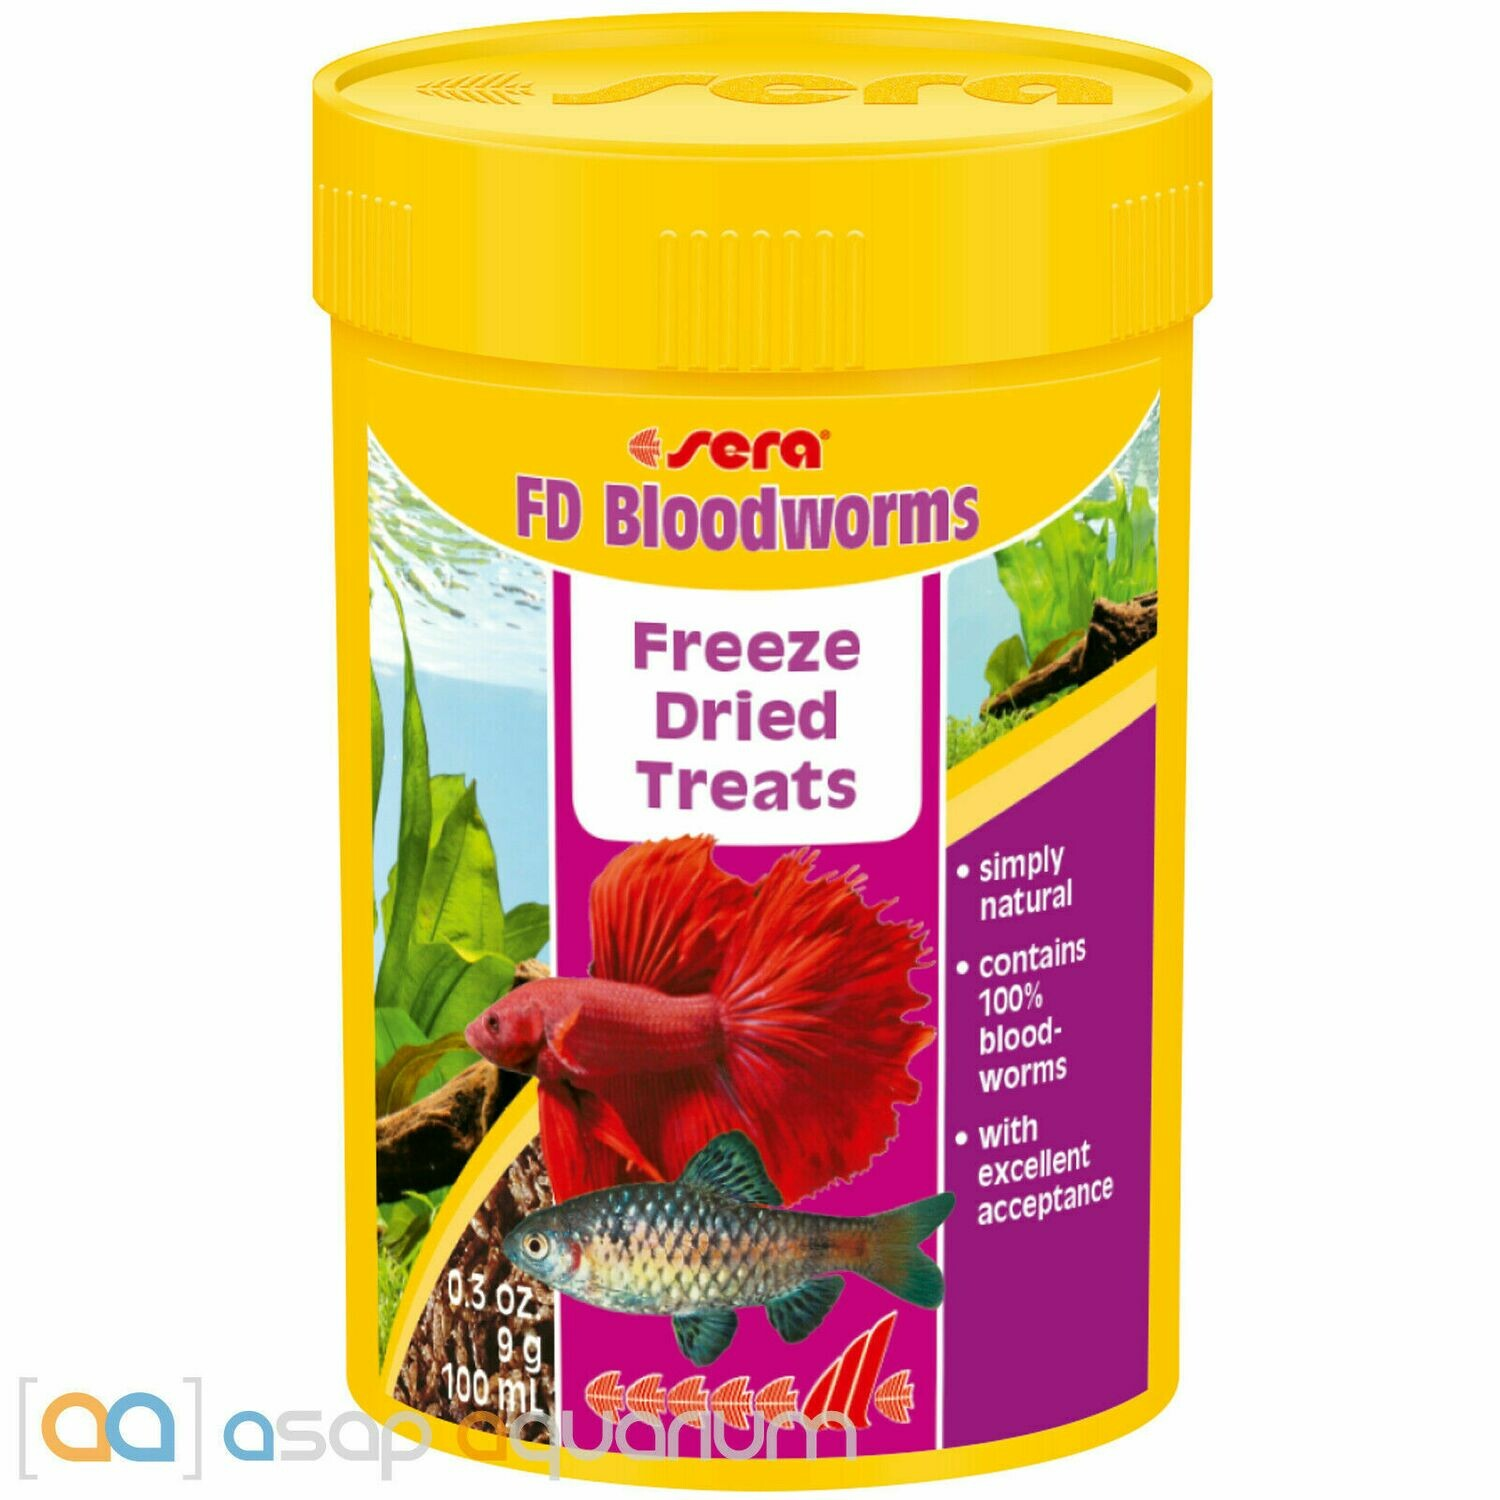 FD Bloodworms